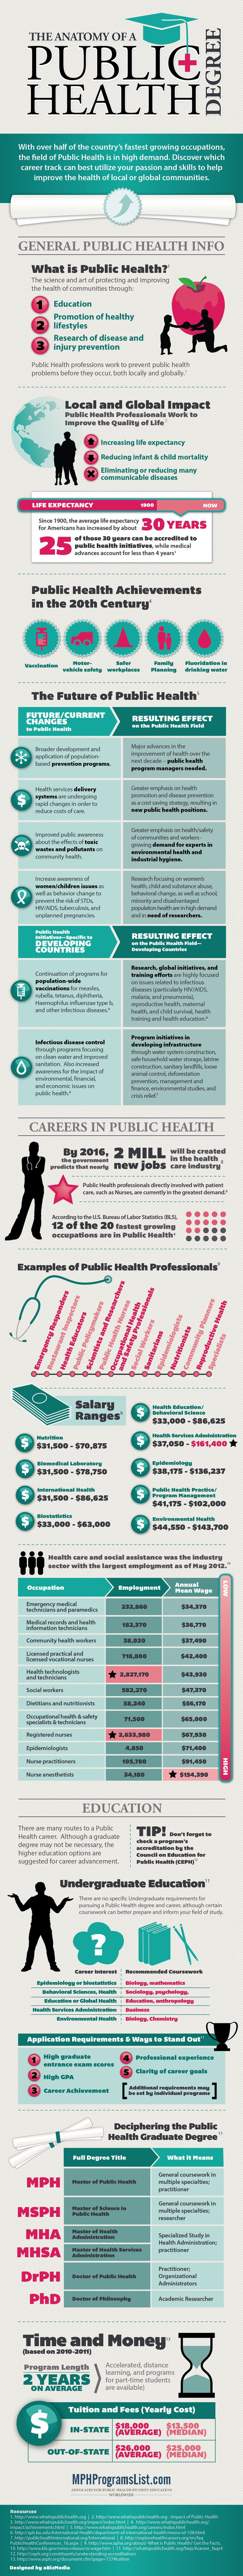 55 best College Majors & Careers images on Pinterest | Job search ...